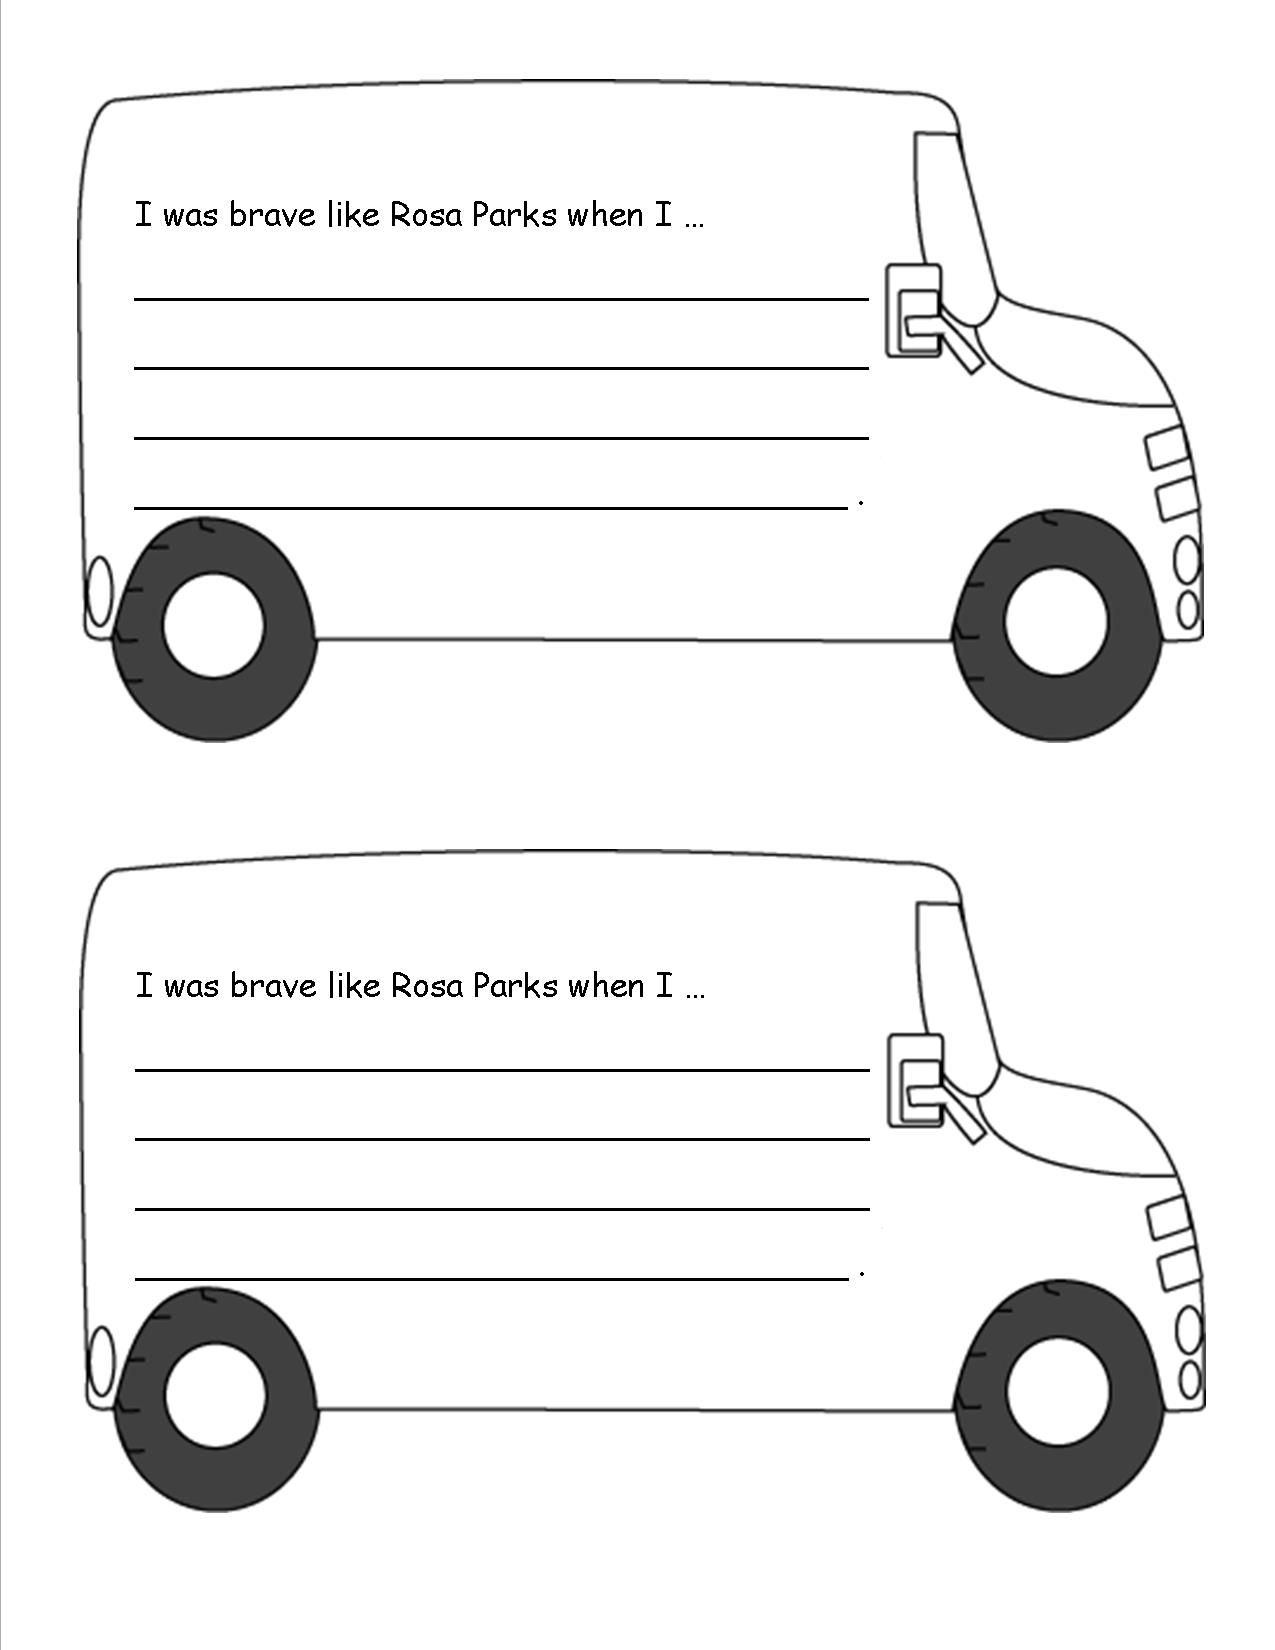 Rosa Parks Worksheet Grade 1